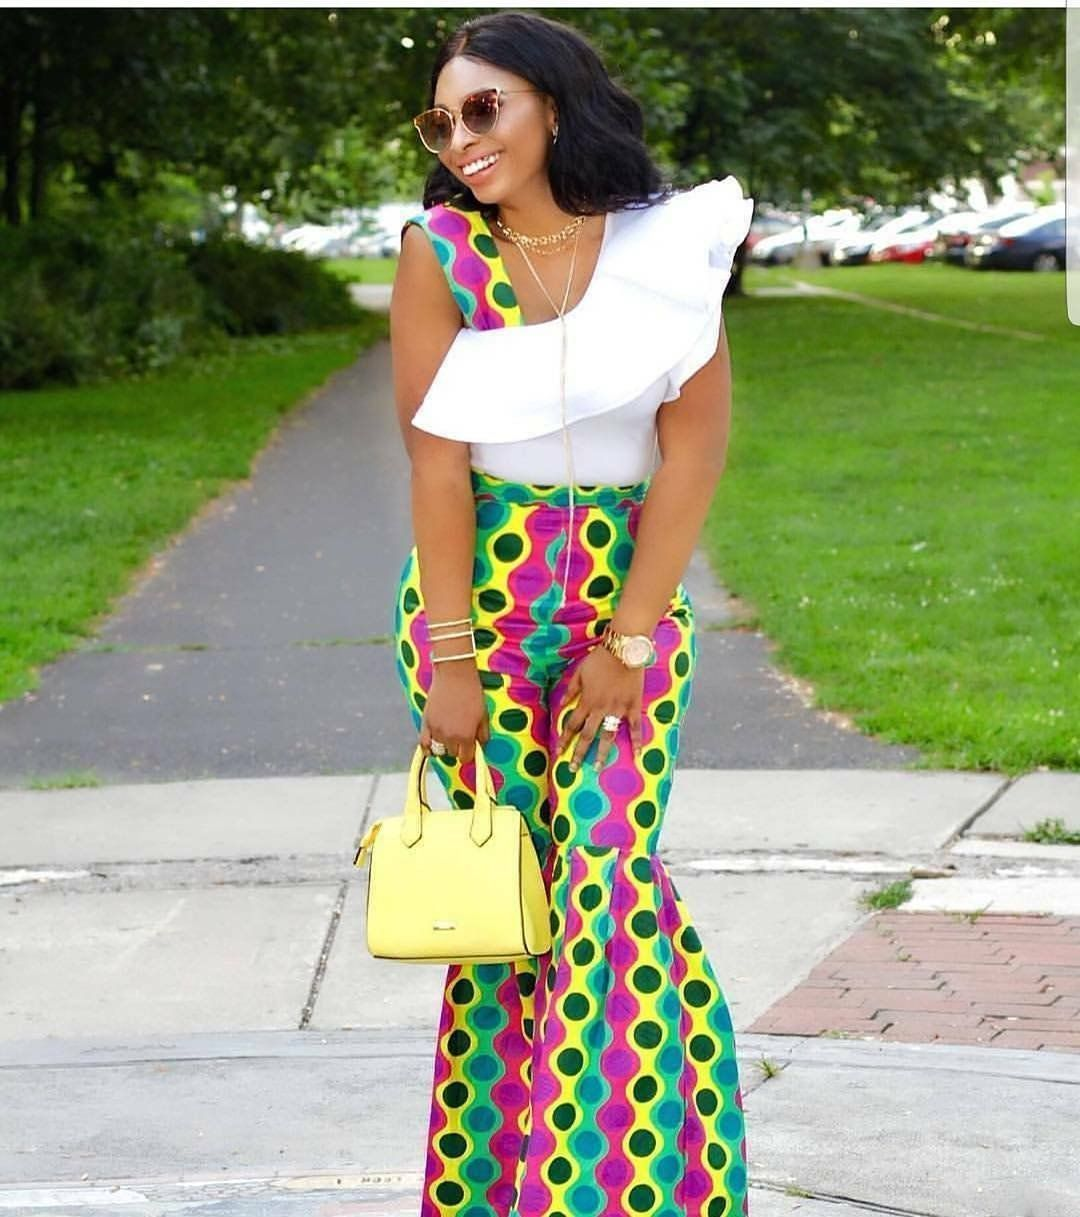 Ankara Splash Of Colors: Style Up Your Week With These Eye-Popping Ankara Fashion - Wedding Digest Naija Blog #afrikanischerdruck Ankara Splash Of Colors: Style Up Your Week With These Eye-Popping Ankara Fashion - Wedding Digest Naija Blog #afrikanischerdruck